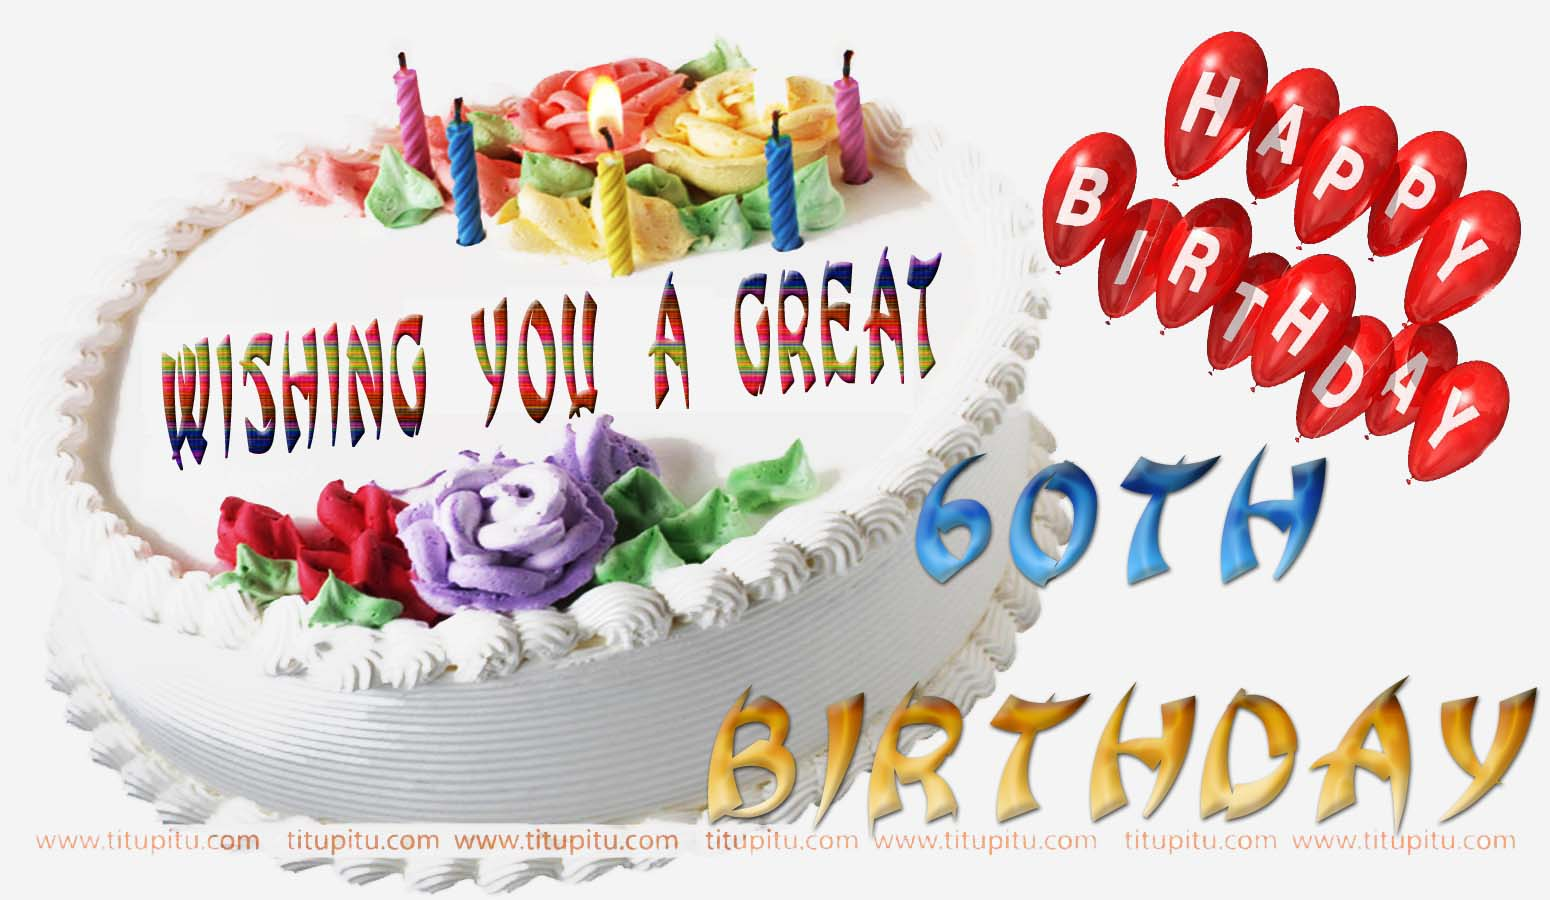 60th birthday images wishes message and wallpaper for ...